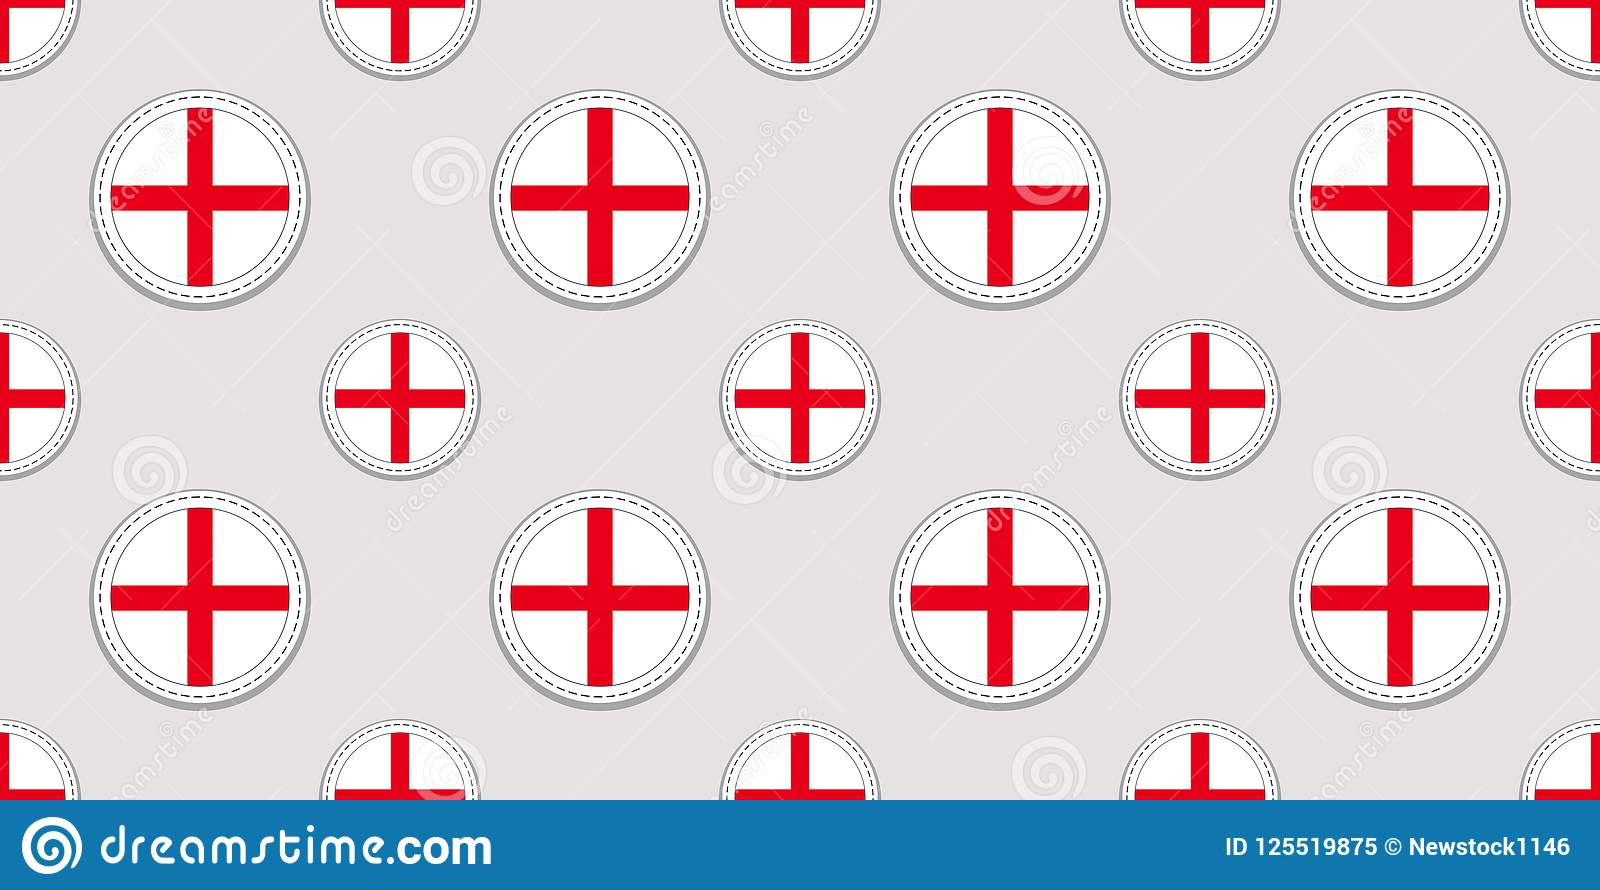 English background. England flag seamless pattern. Vector round icons. Geometric circle symbols. Texture for language courses, spo